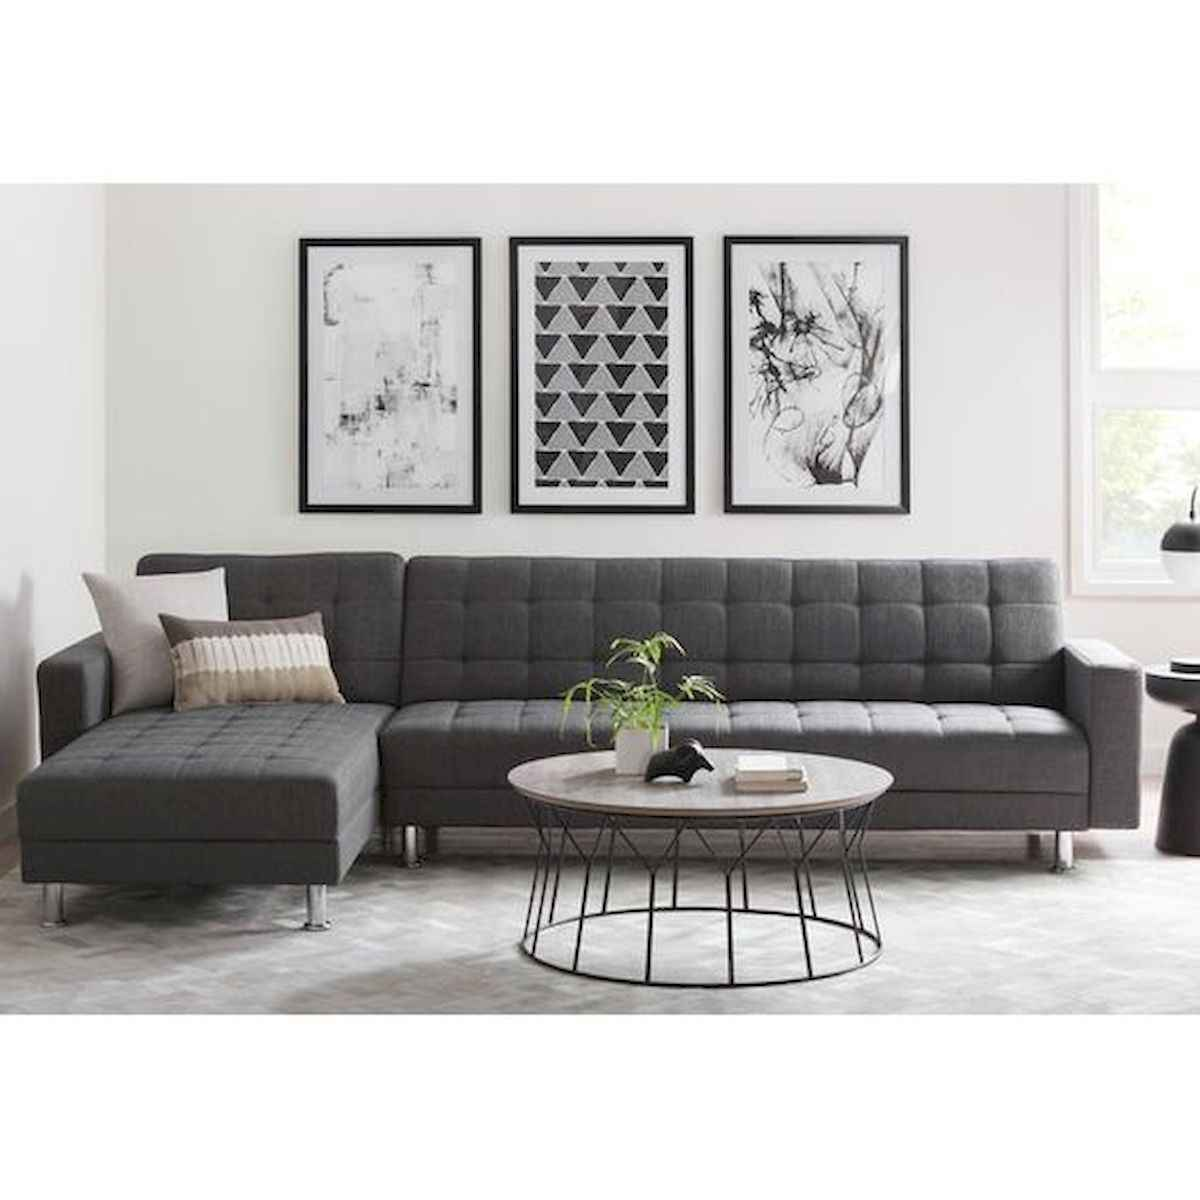 70 Stunning Grey White Black Living Room Decor Ideas And Remodel (11)